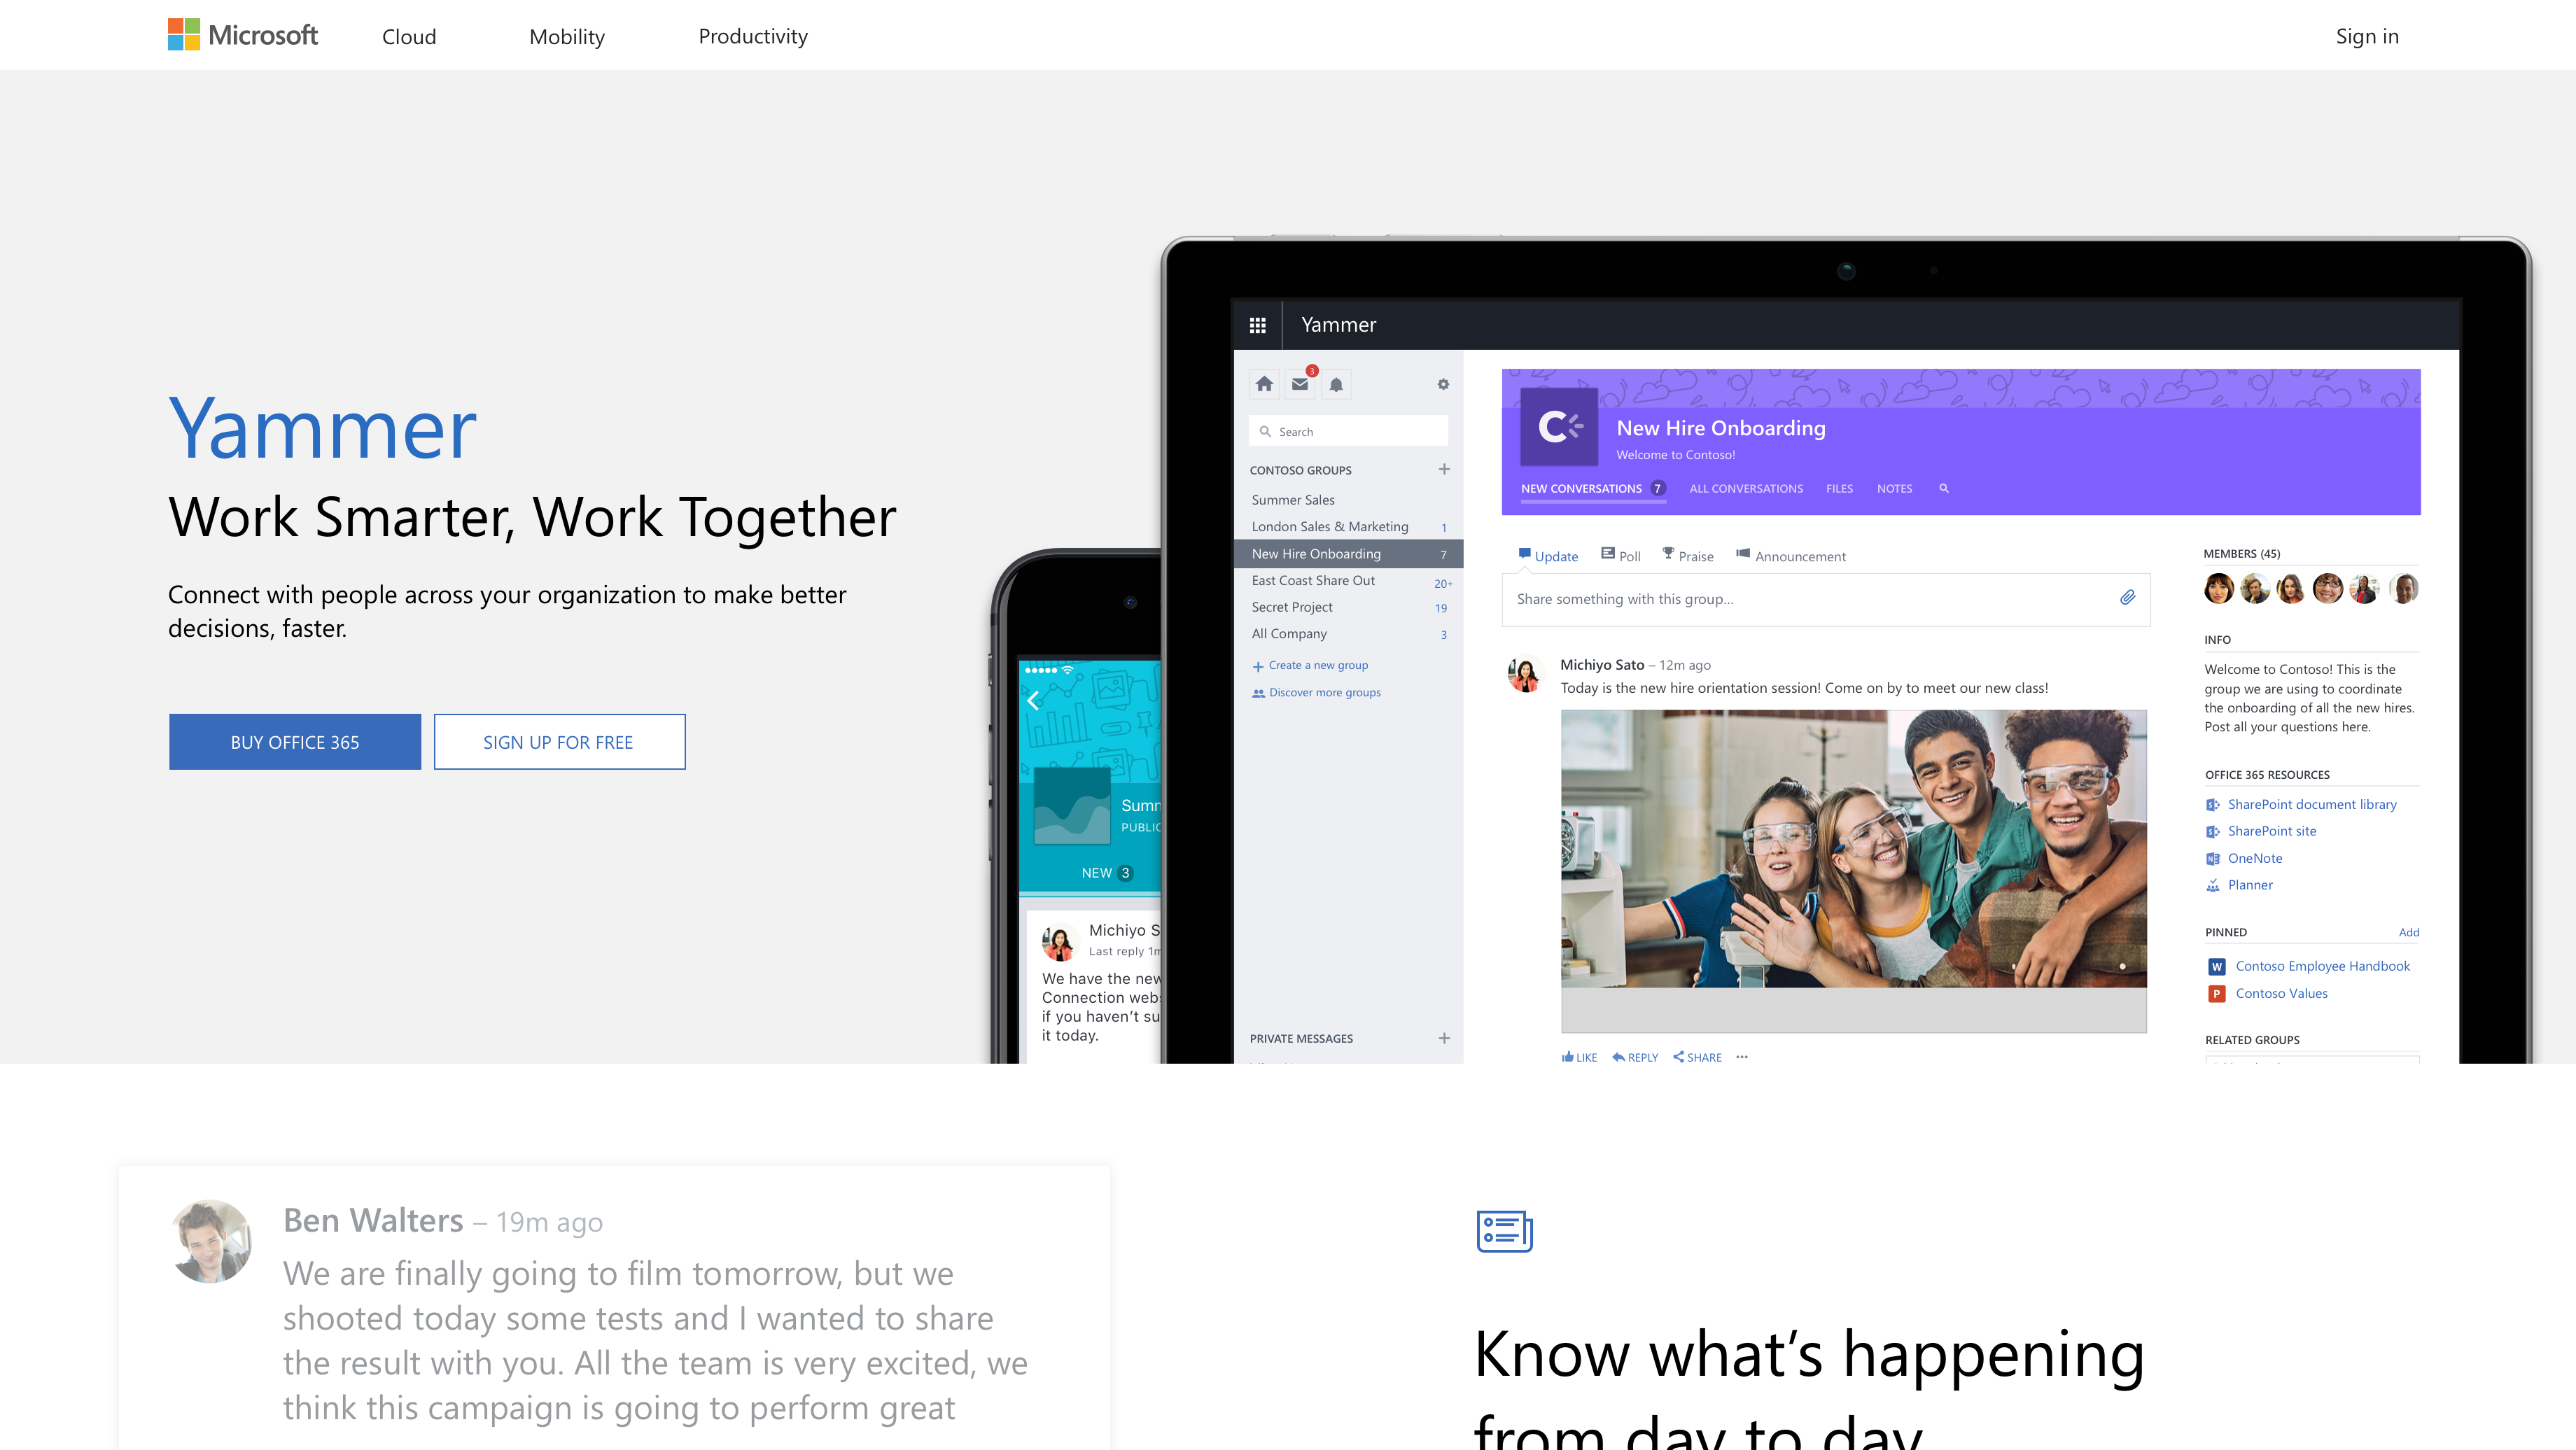 Yammer marketing pages